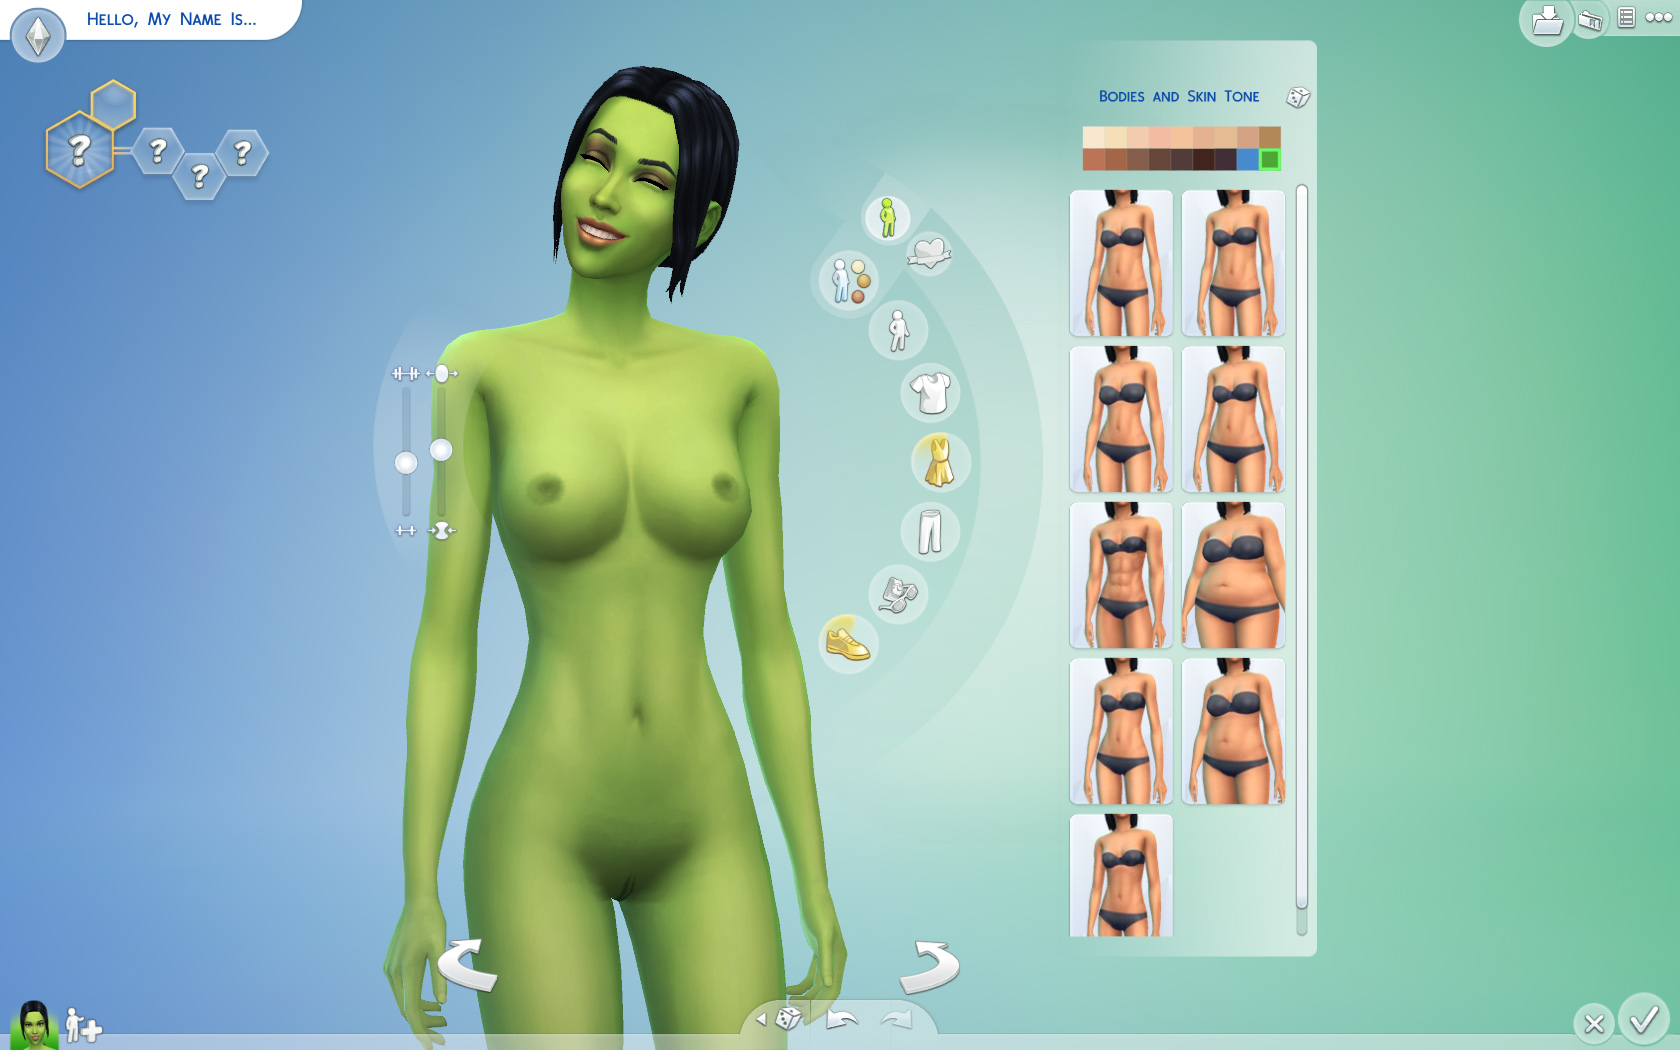 Sims female nude skins congratulate